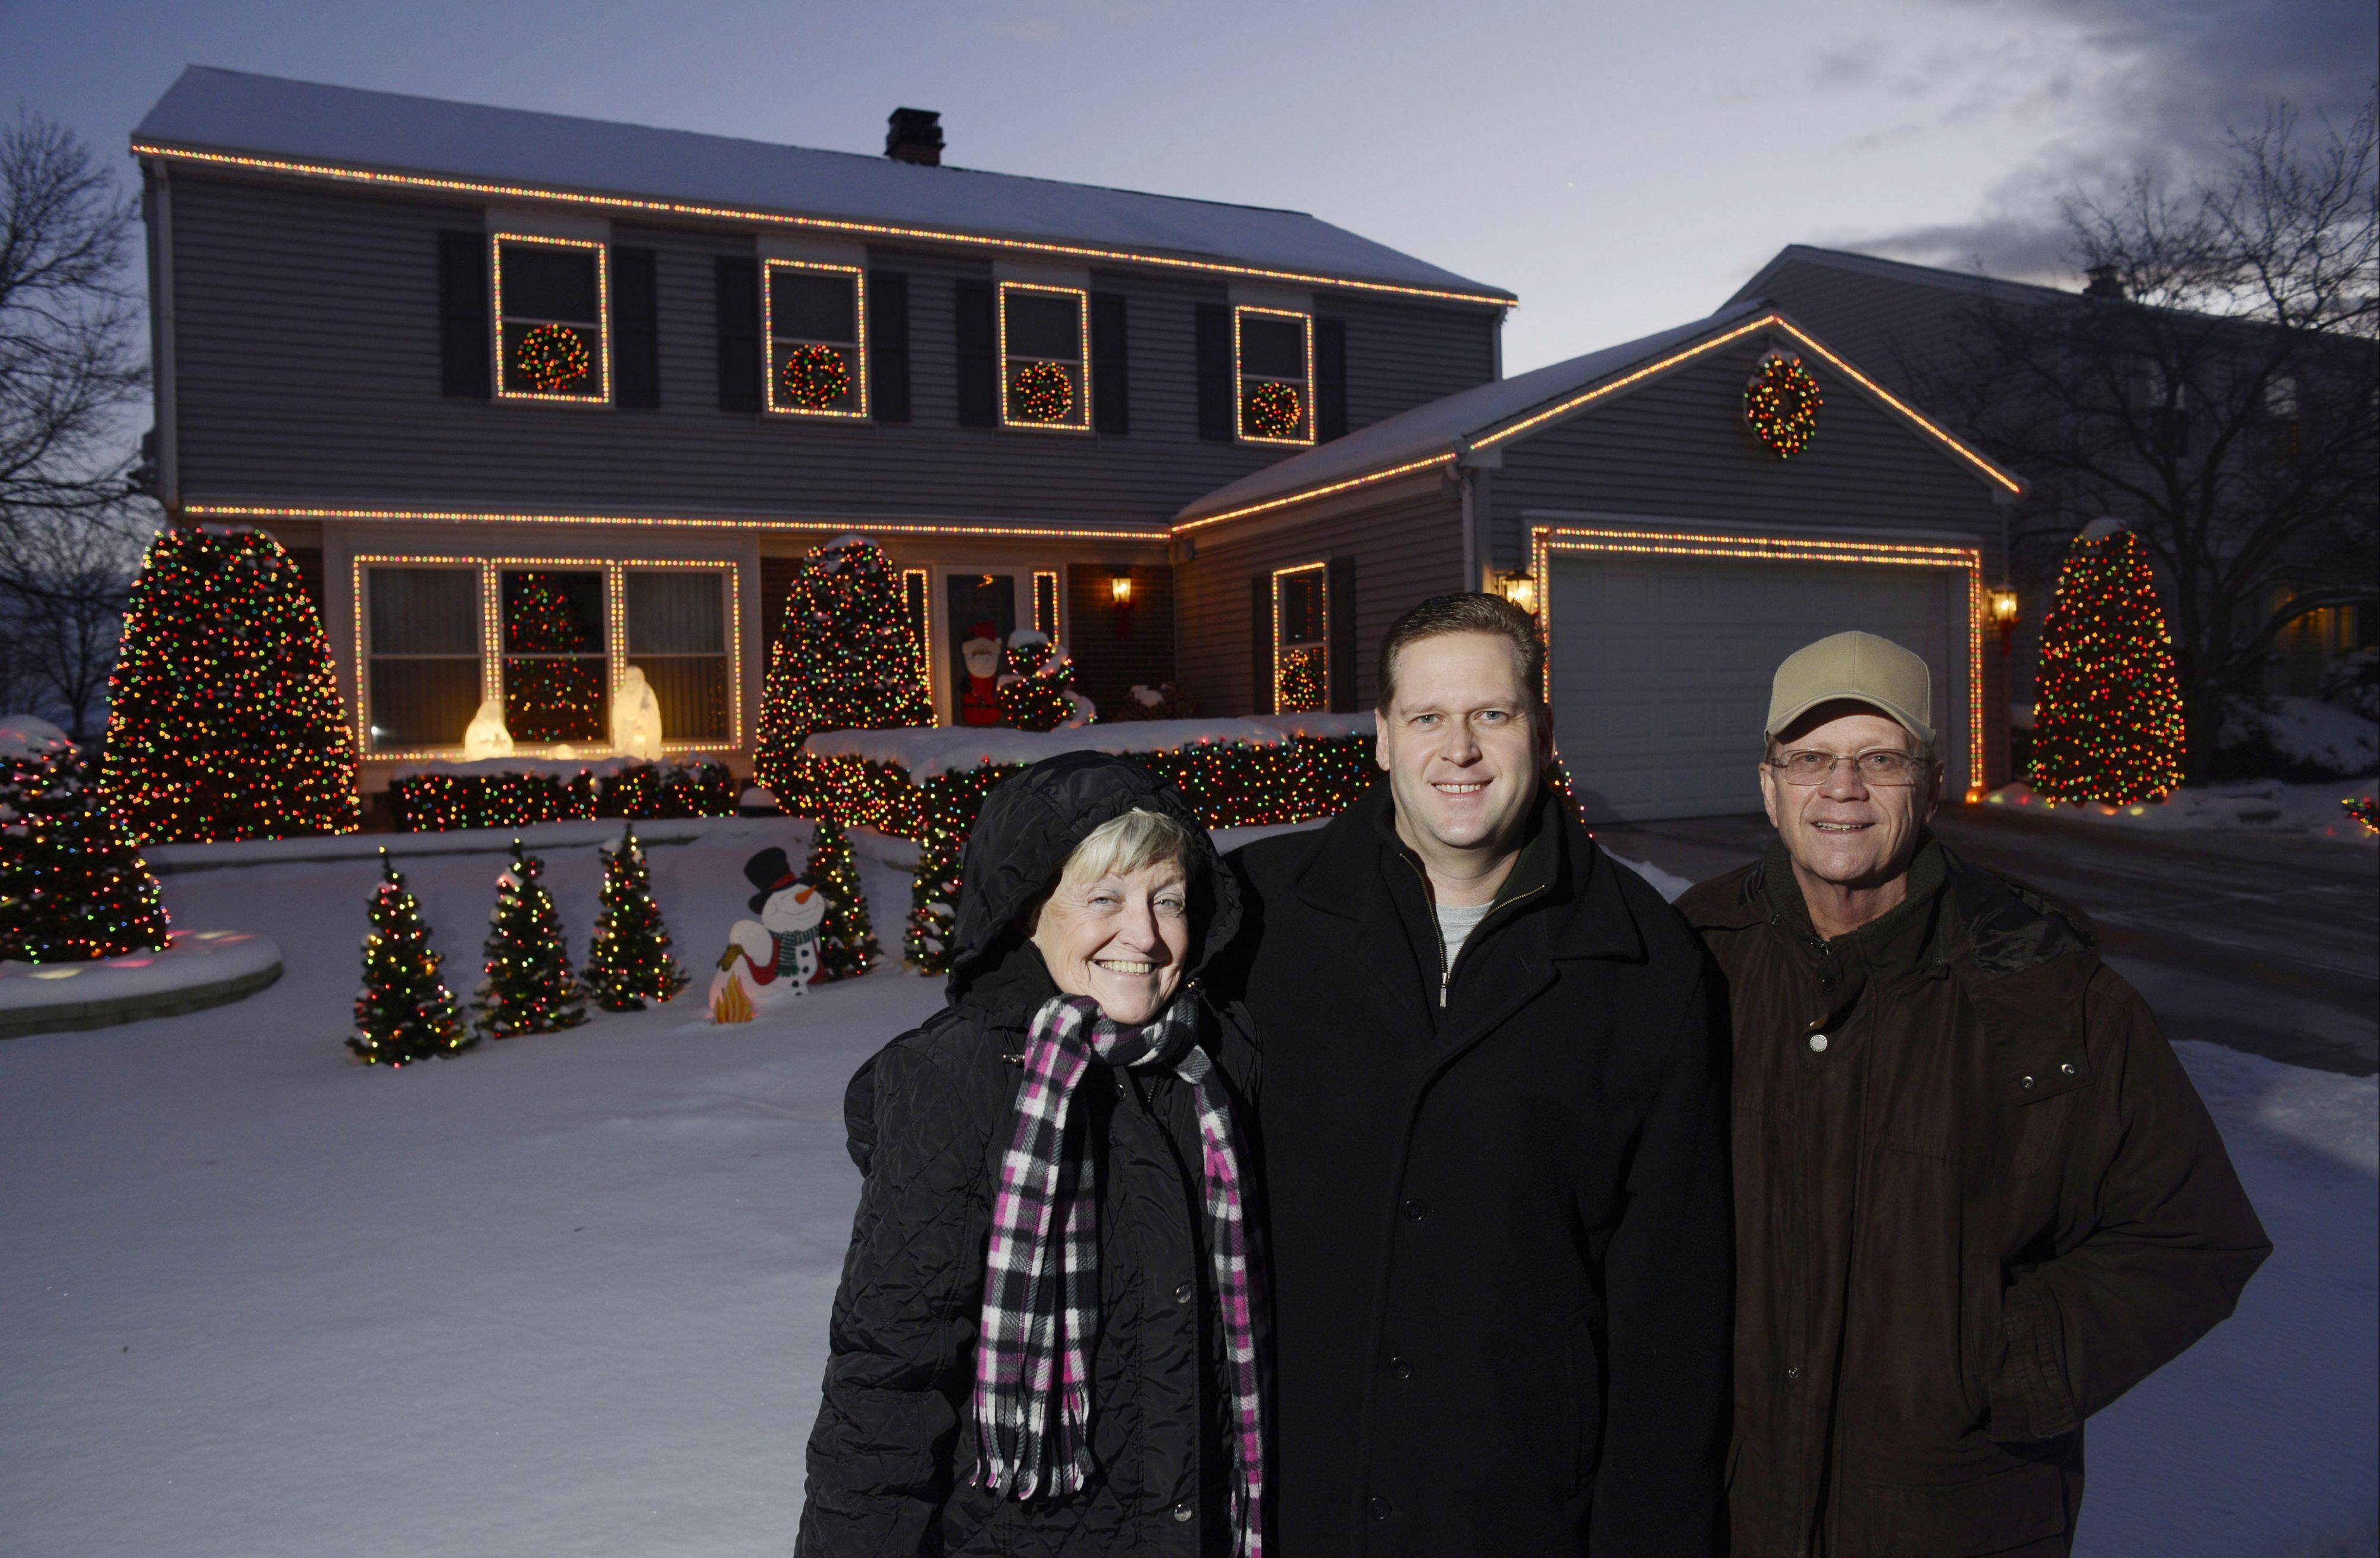 Todd Mickley stands with his parents, Donna and Hank, in front of their Schaumburg home, which has been decorated with 18,000 holiday lights, at 2049 Tiffany Drive. The Mickleys won the Editor's Choice award for the Northwest suburbs in the Daily Herald's holiday lights contest.